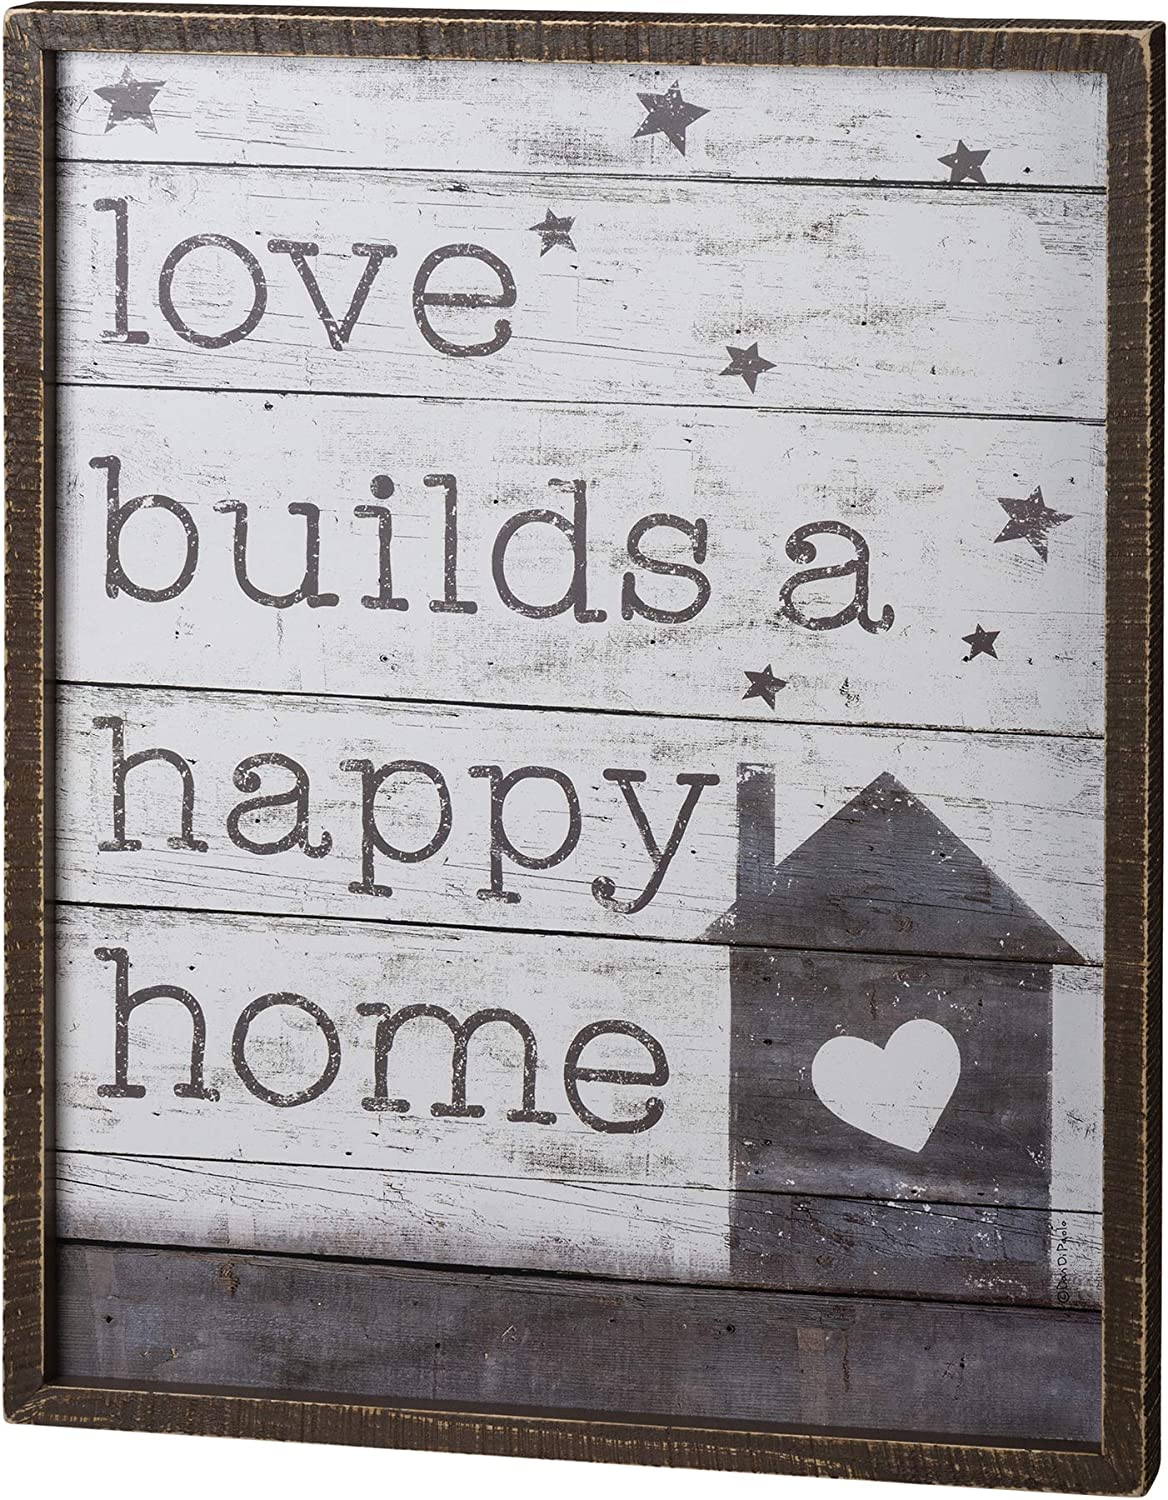 Primitives by Kathy Love Builds a Happy Home - Rustic Farmhouse Decor for The Home Sign - Wall Decorations for Living Room, Kitchen Sign, Farmhouse Country Wall Decor, Rustic Home Decor, Wood Frame